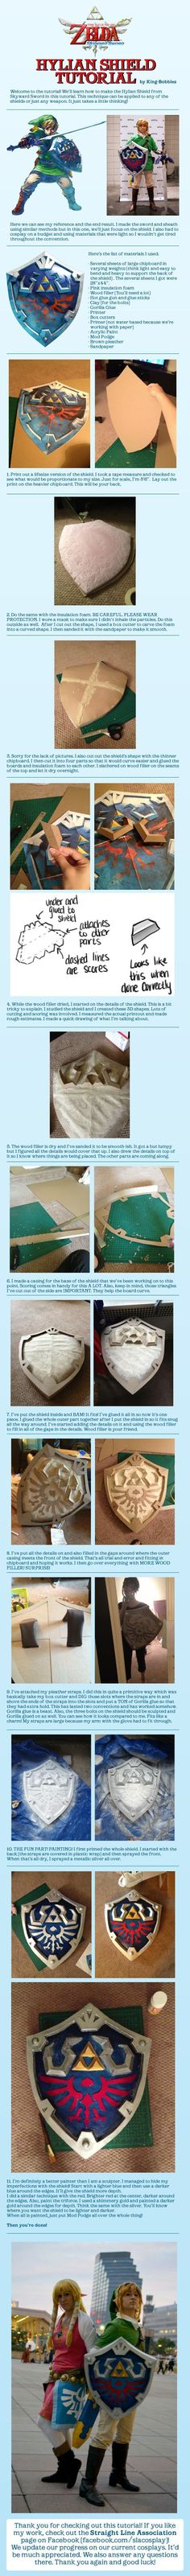 The Legend of Zelda Hylian Shield Cosplay Tutorial by King-Bobbles - Worth keeping handy. Link Cosplay, Cosplay Diy, Halloween Cosplay, Halloween Costumes, Cosplay Weapons, Cosplay Armor, The Legend Of Zelda, Legend Of Zelda Costume, Photos Booth